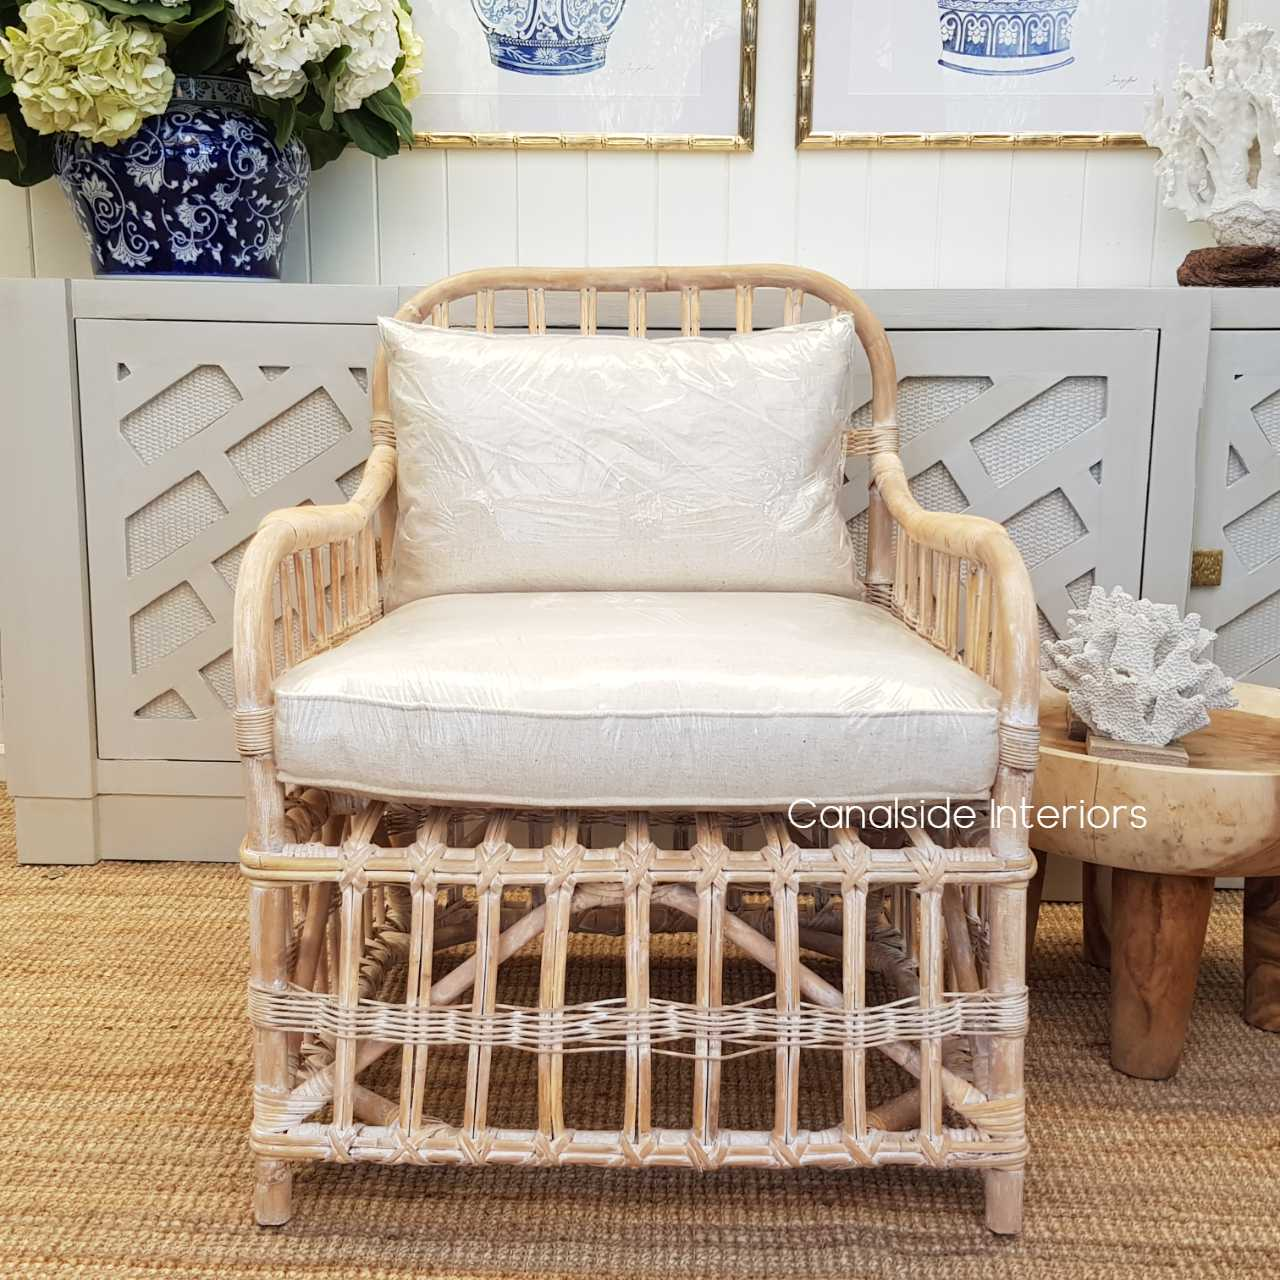 Panama Cane Armchair  CHAIRS, HAMPTONS Style, PLANTATION Style, CHAIRS Lounge, LIVING Room, LIVING Chairs, PLANTATION STYLE Rattan Island living, british colonial